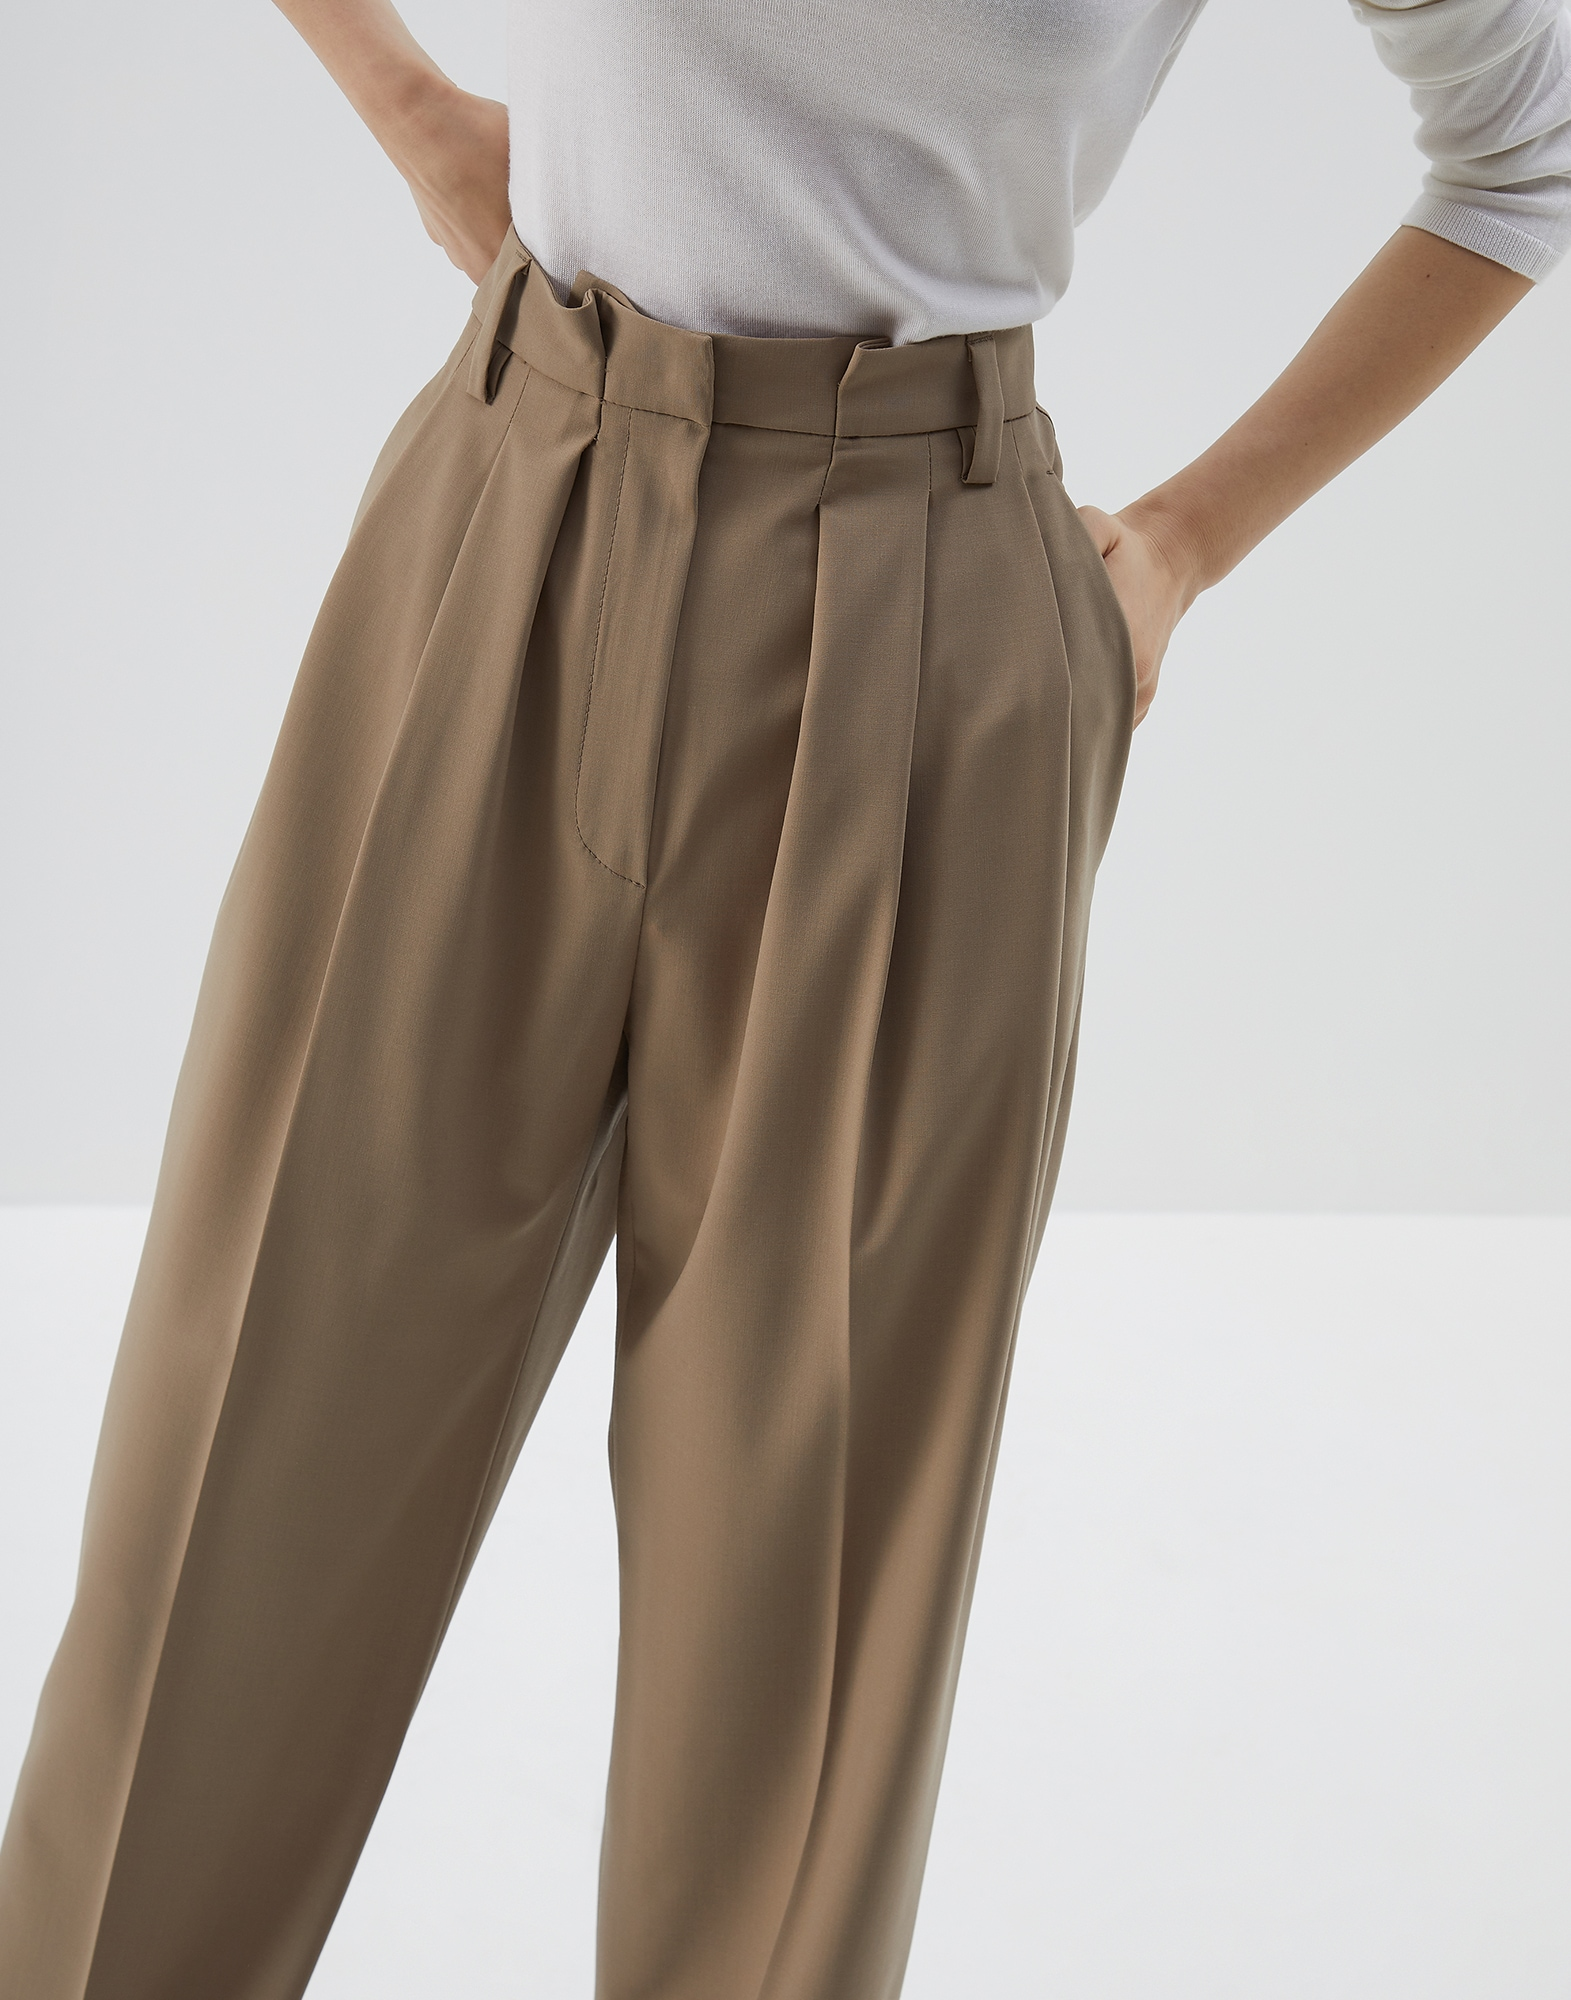 Trousers Brown Woman 2 - Brunello Cucinelli